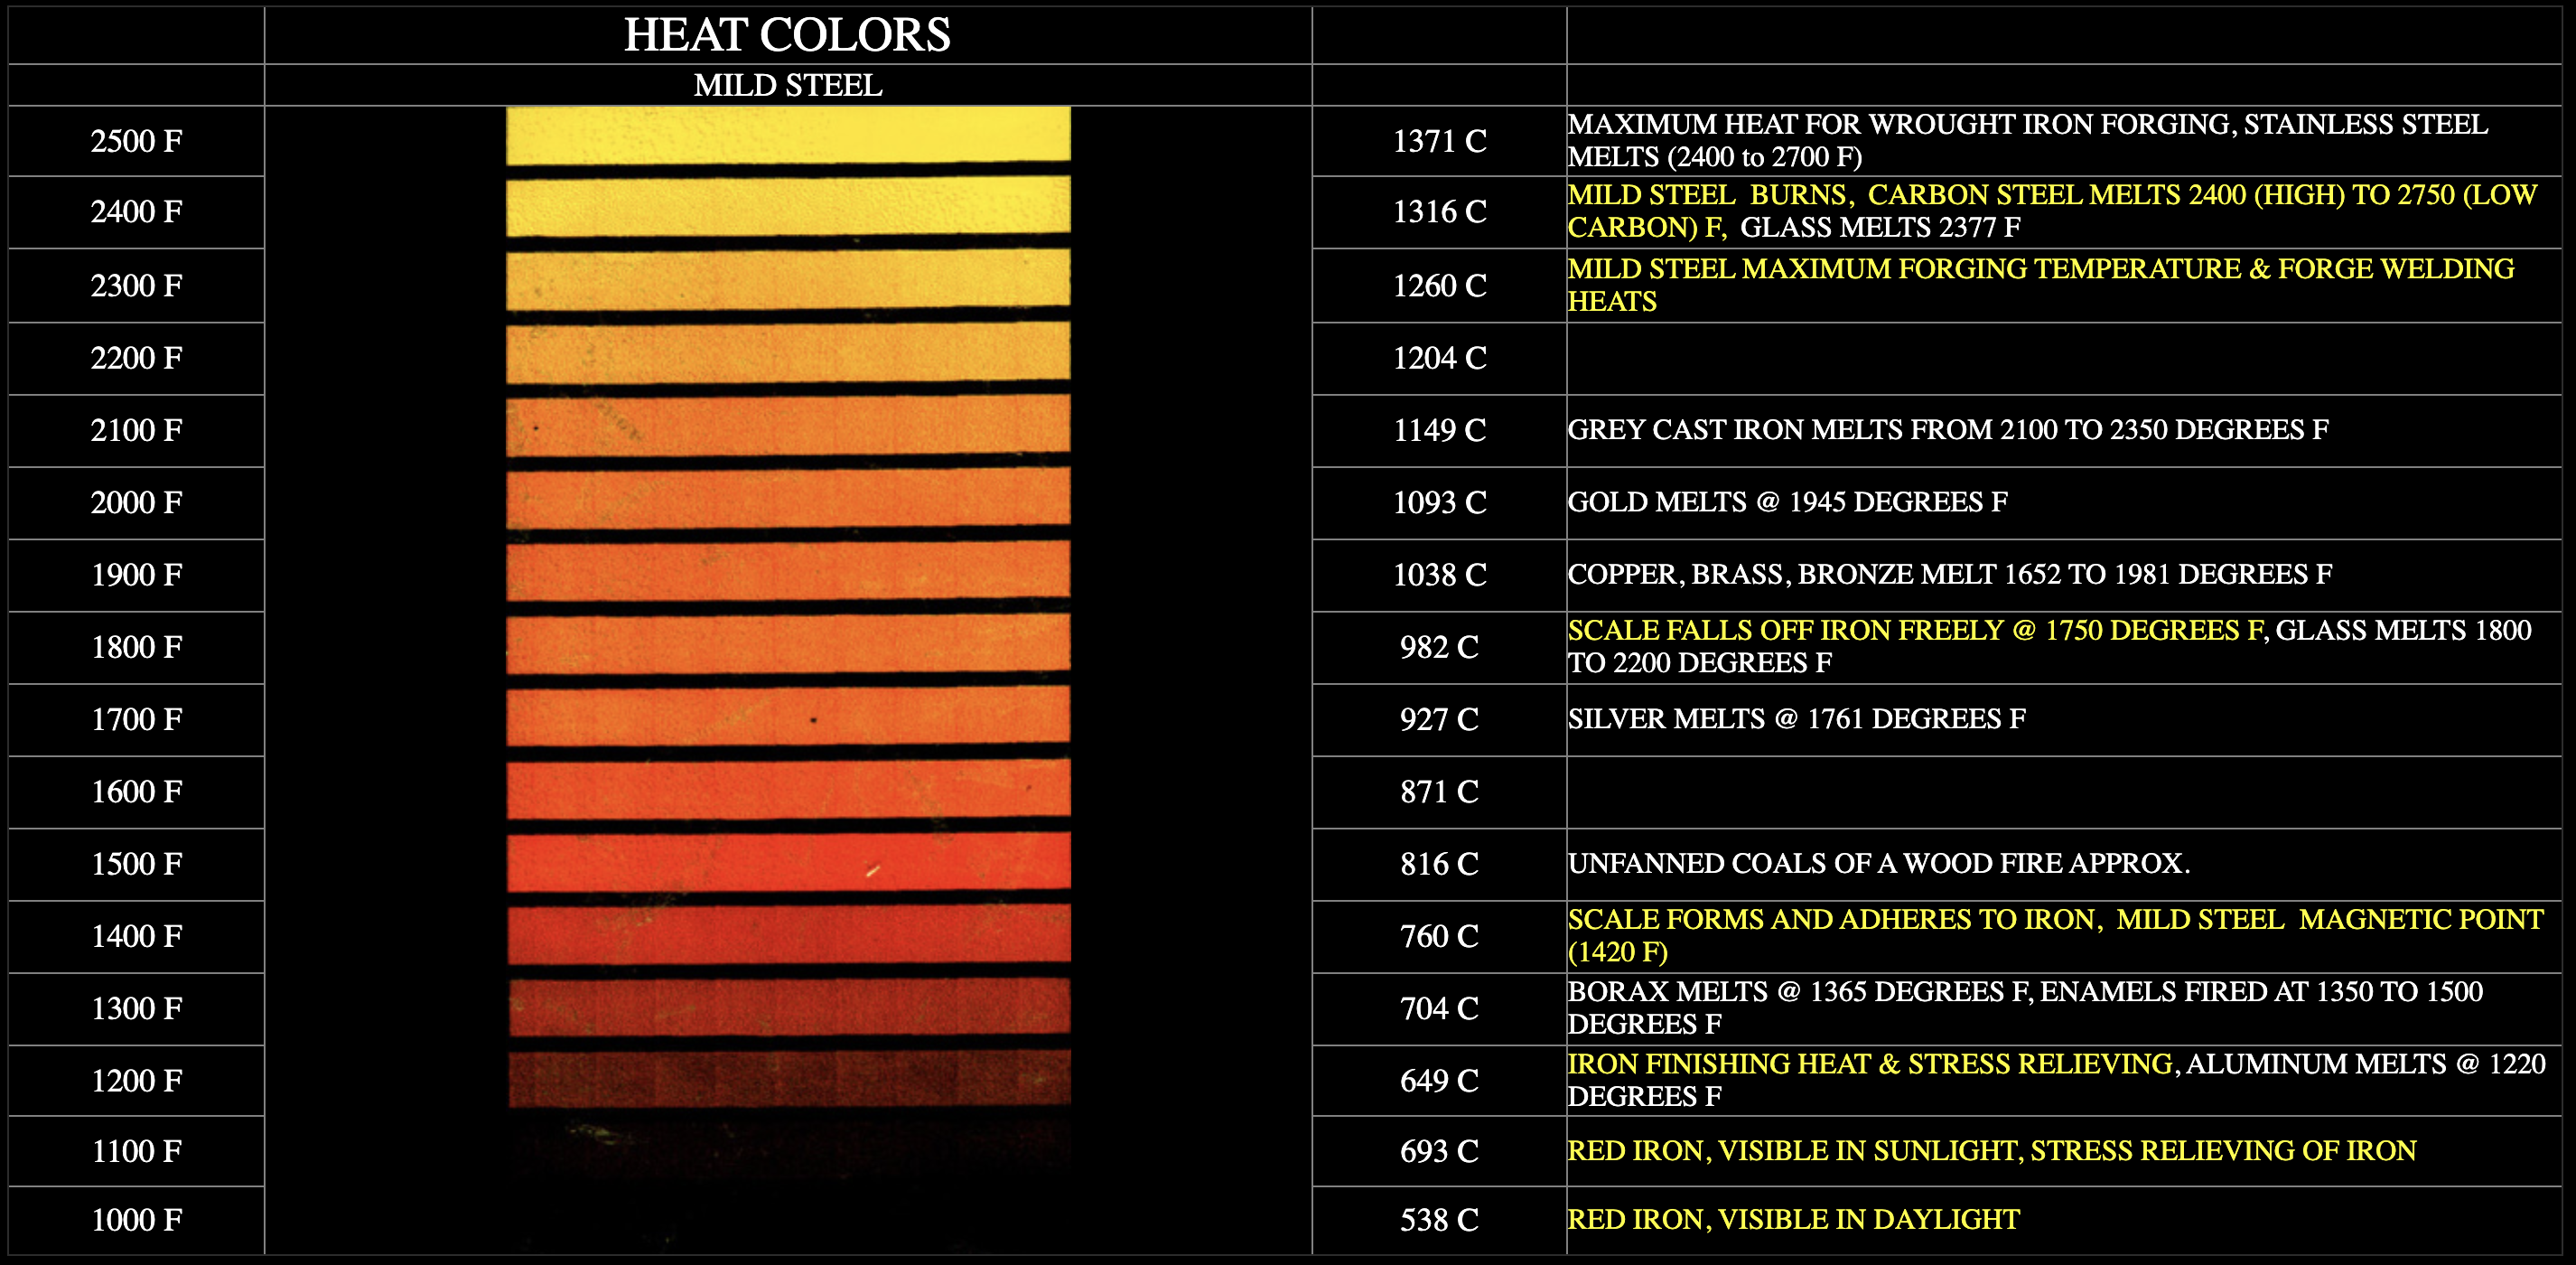 Heat Colors Chart